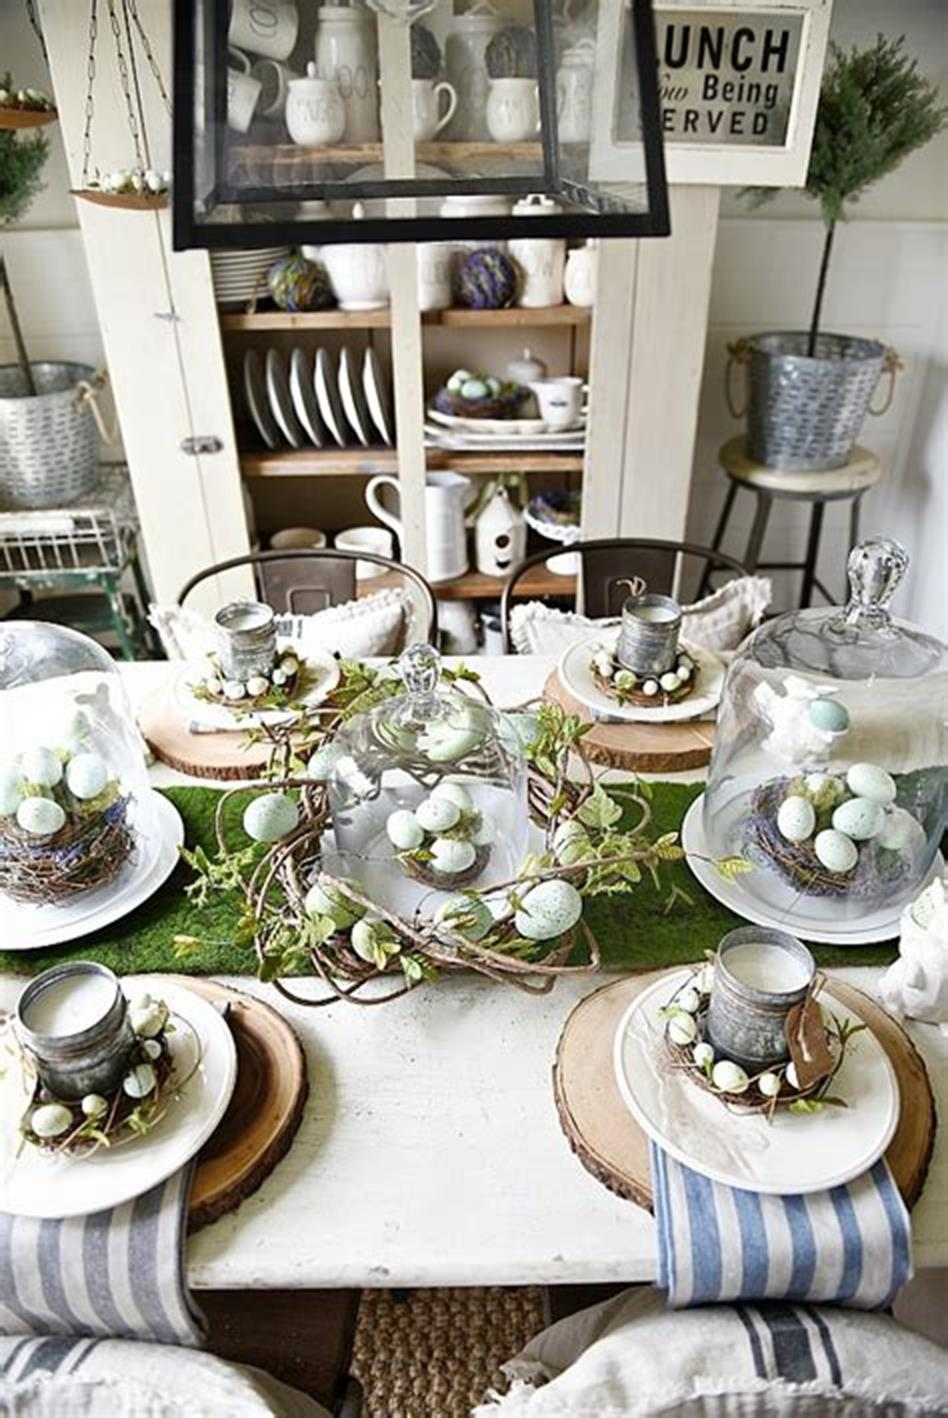 37 Beautiful Farmhouse Spring Decorating Ideas On a Budget for 2019 4